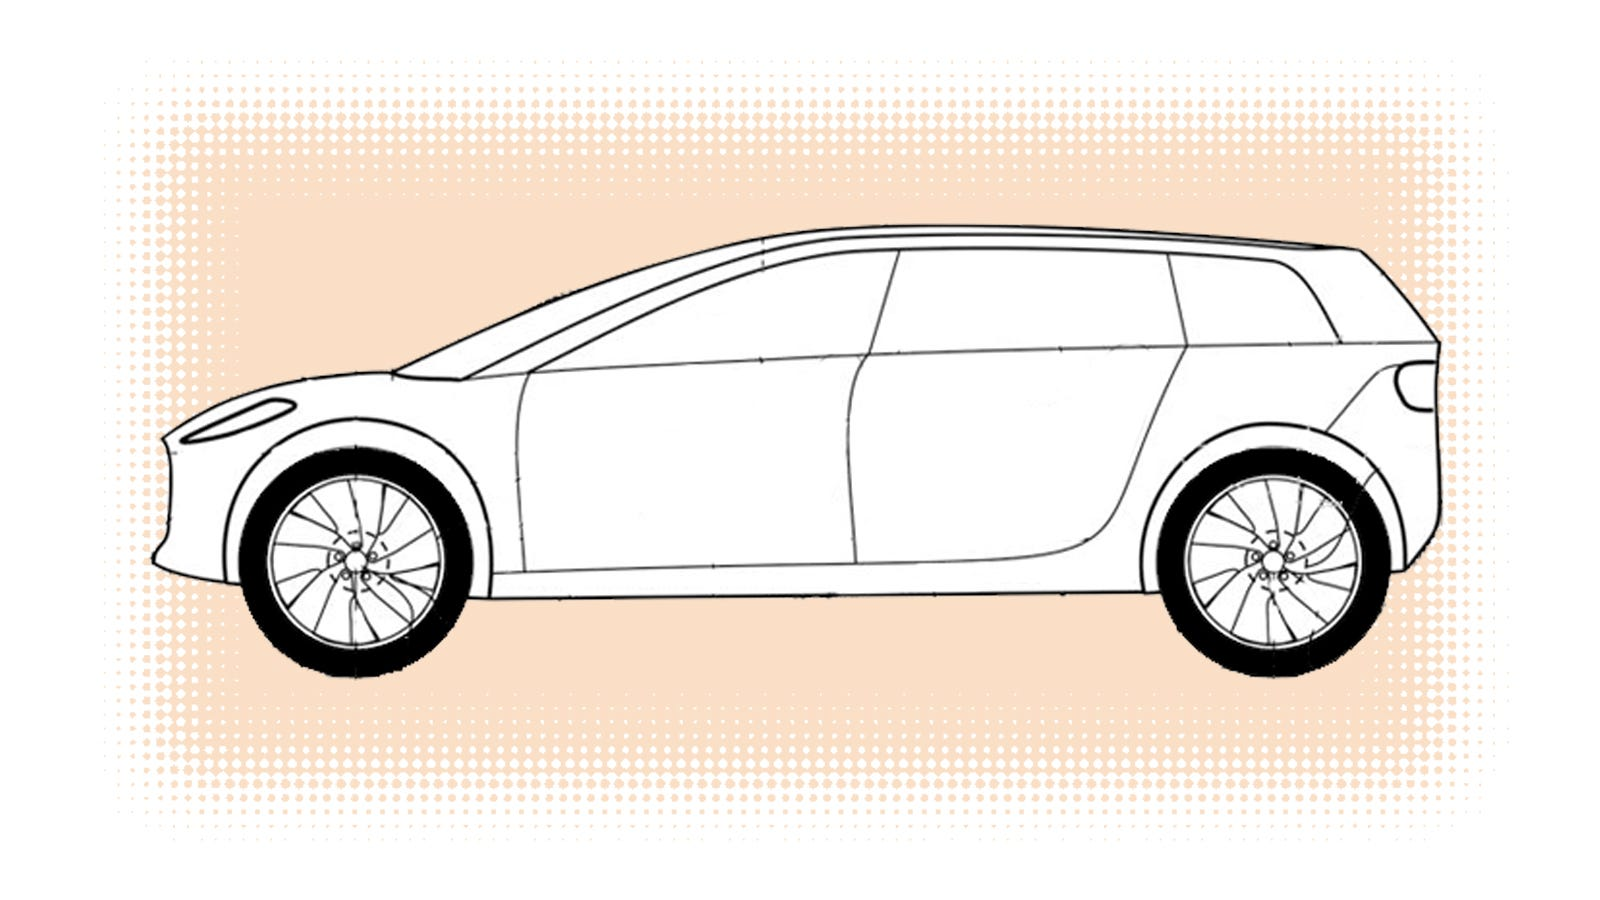 This patent sketch of the dyson car has three rows and a lot of ride height